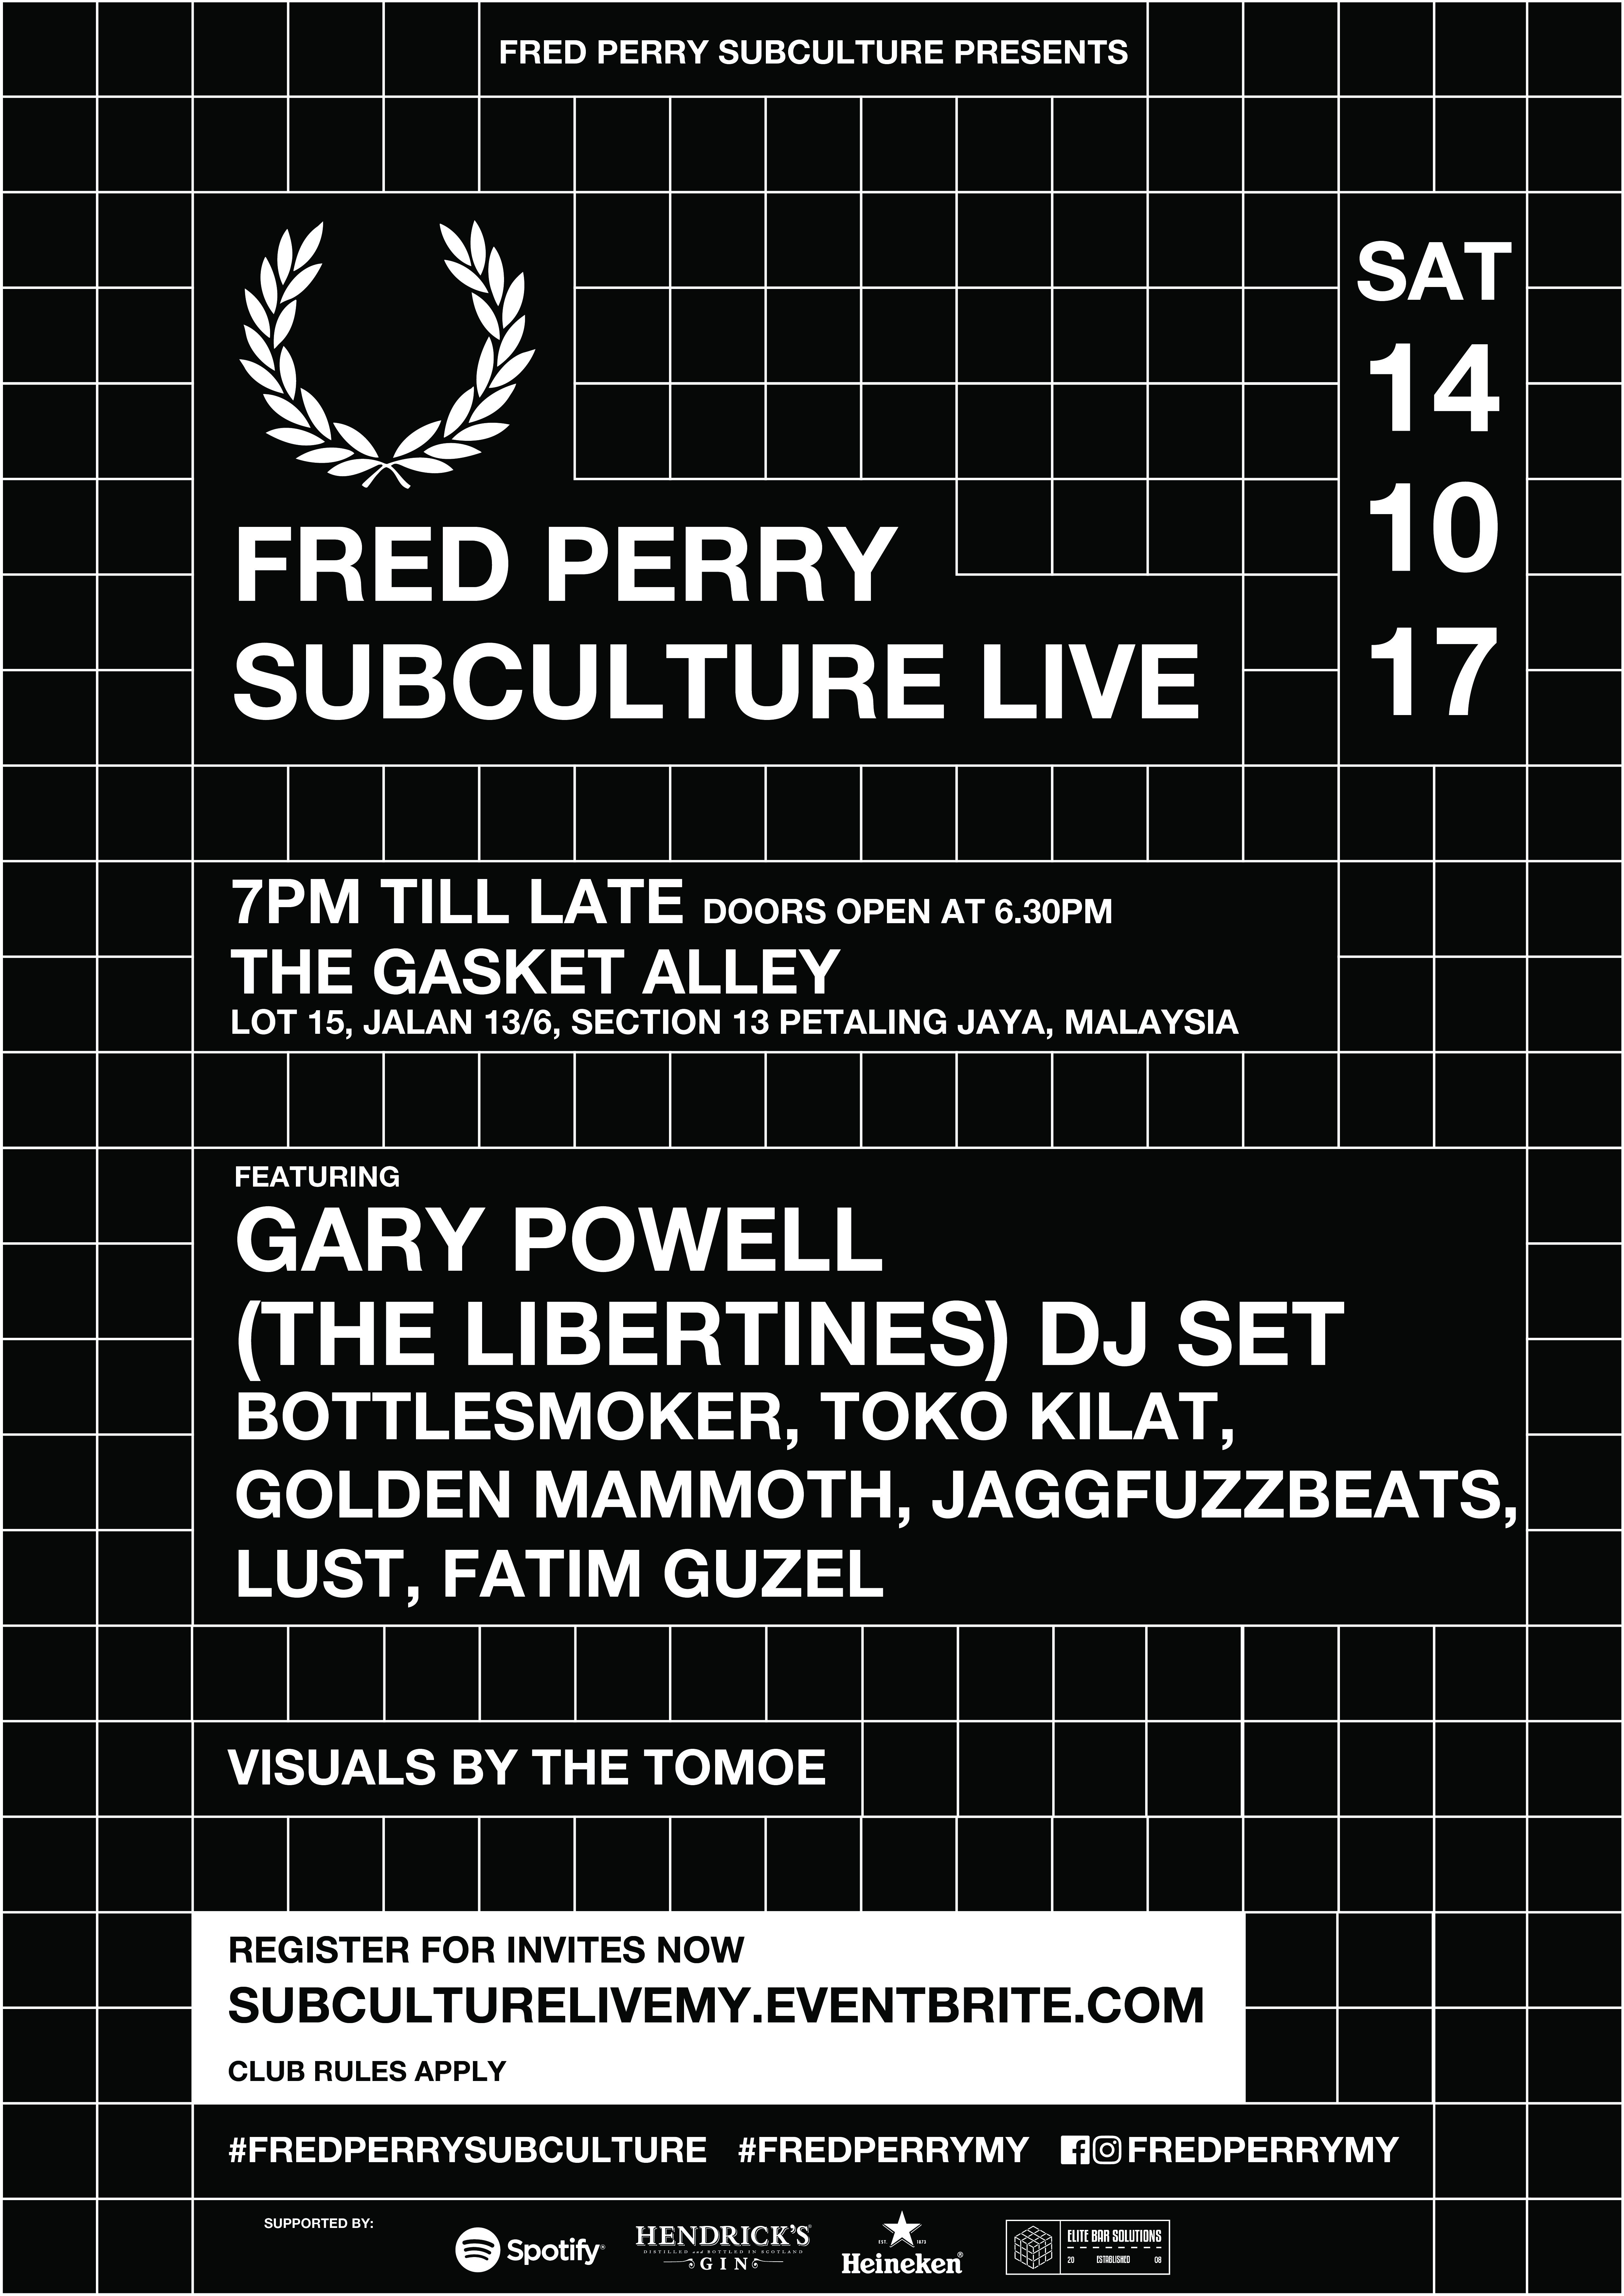 FP SUBCULTURE LIVE MALAYSIA 201